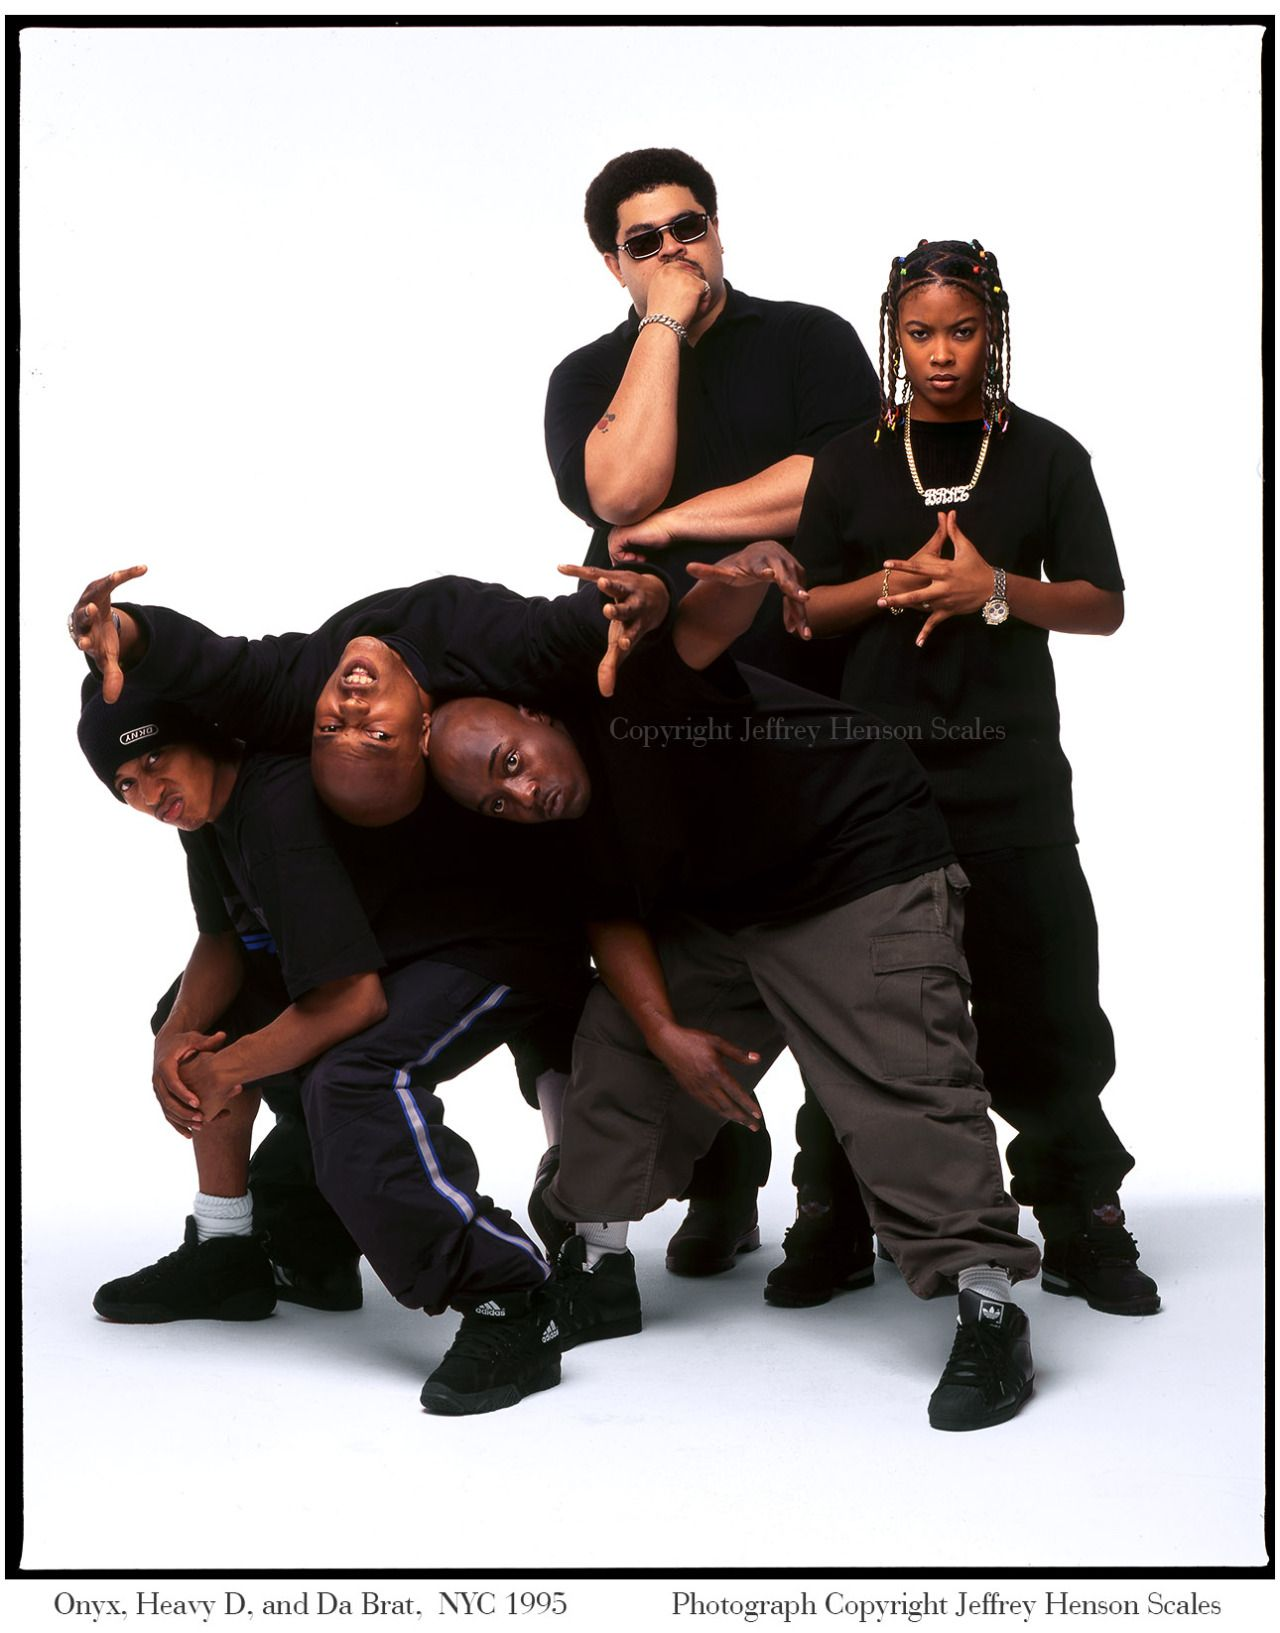 48b3af1fb4e9a Let the Boys Be Boys, and Da Brat, Be That September 1995: It was a magazine  cover shoot of the hip-hop performers, Onyx (Sticky Fingaz, Fredro Starr,  ...